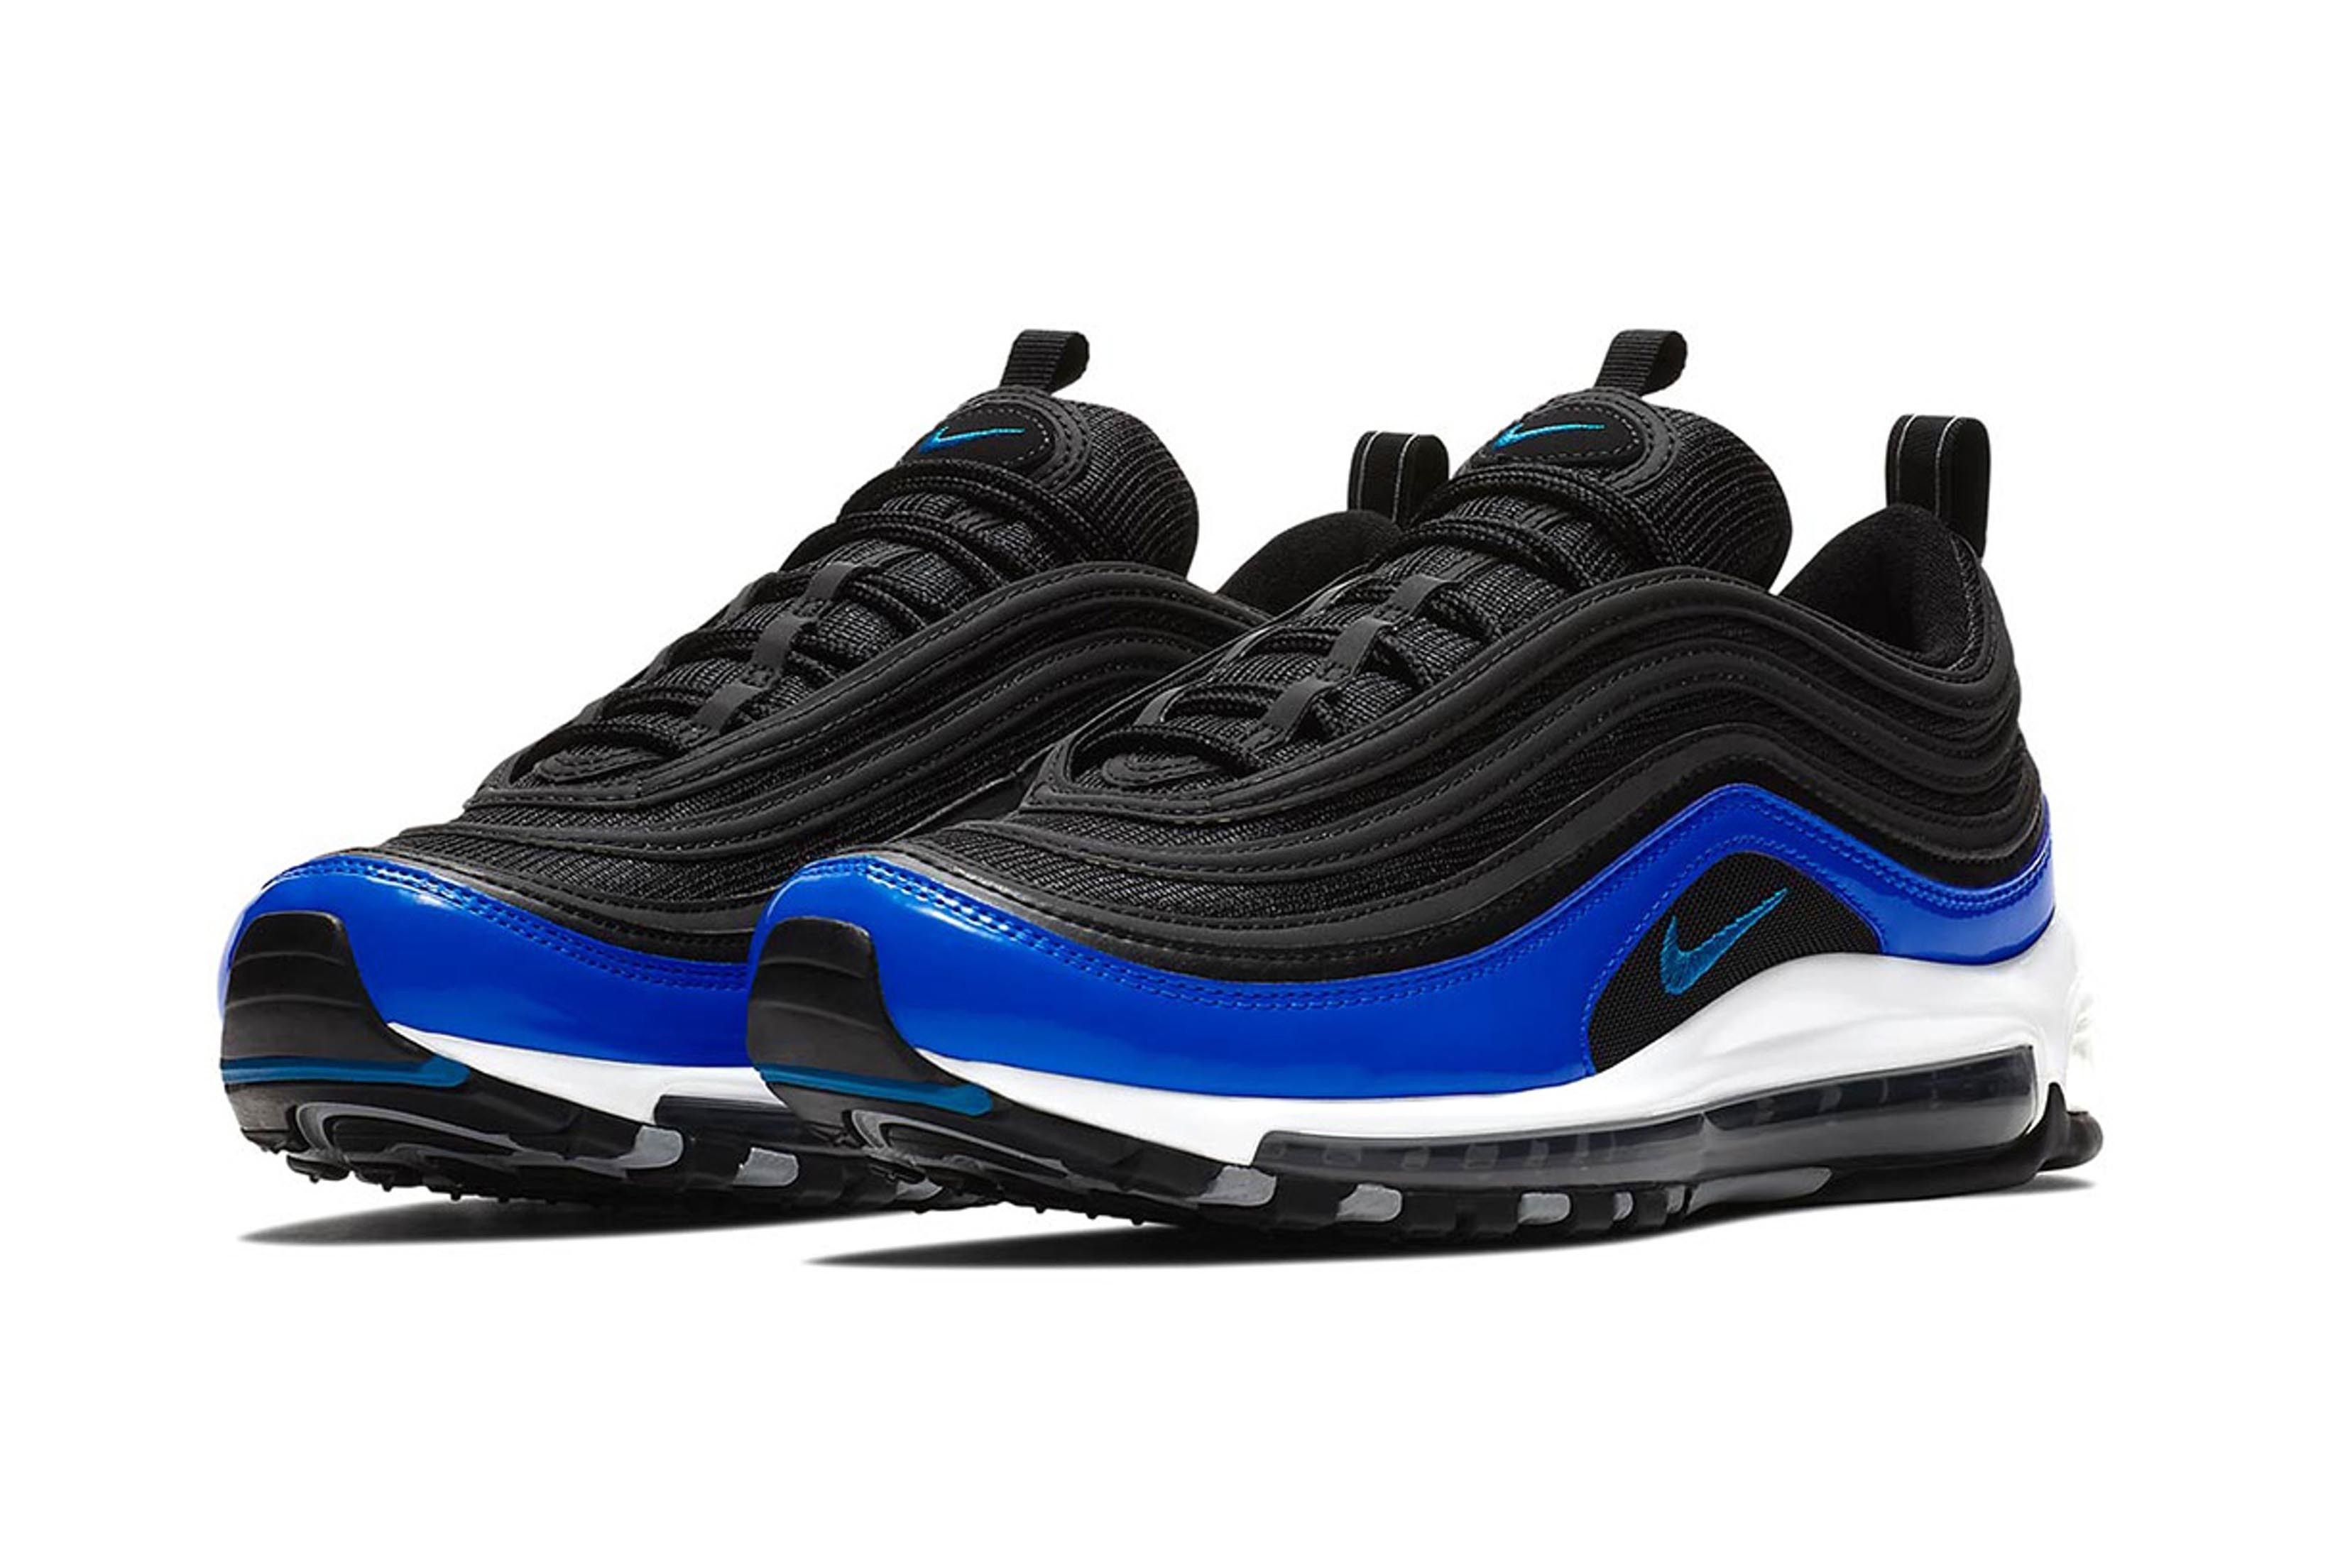 Nike Air Max 97 Binary Blue 2 Sneaker Freaker